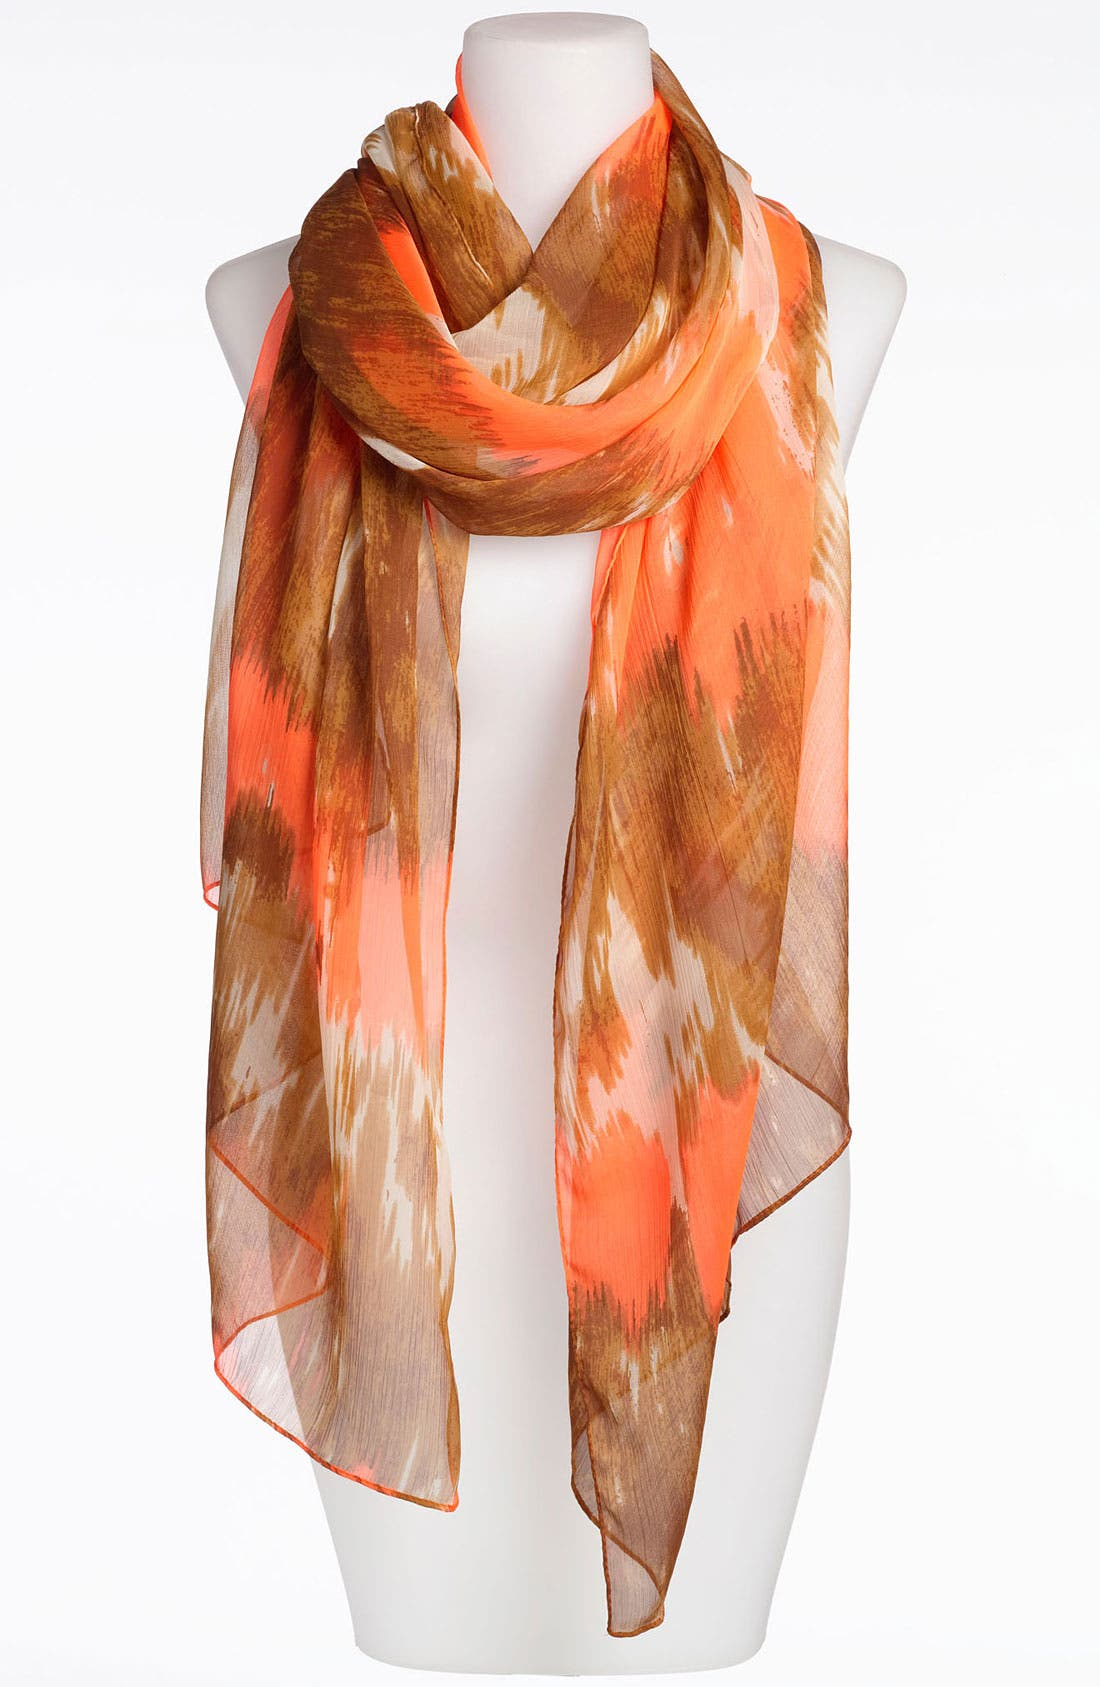 Main Image - Made of Me Accessories Tie Dye Stripe Scarf